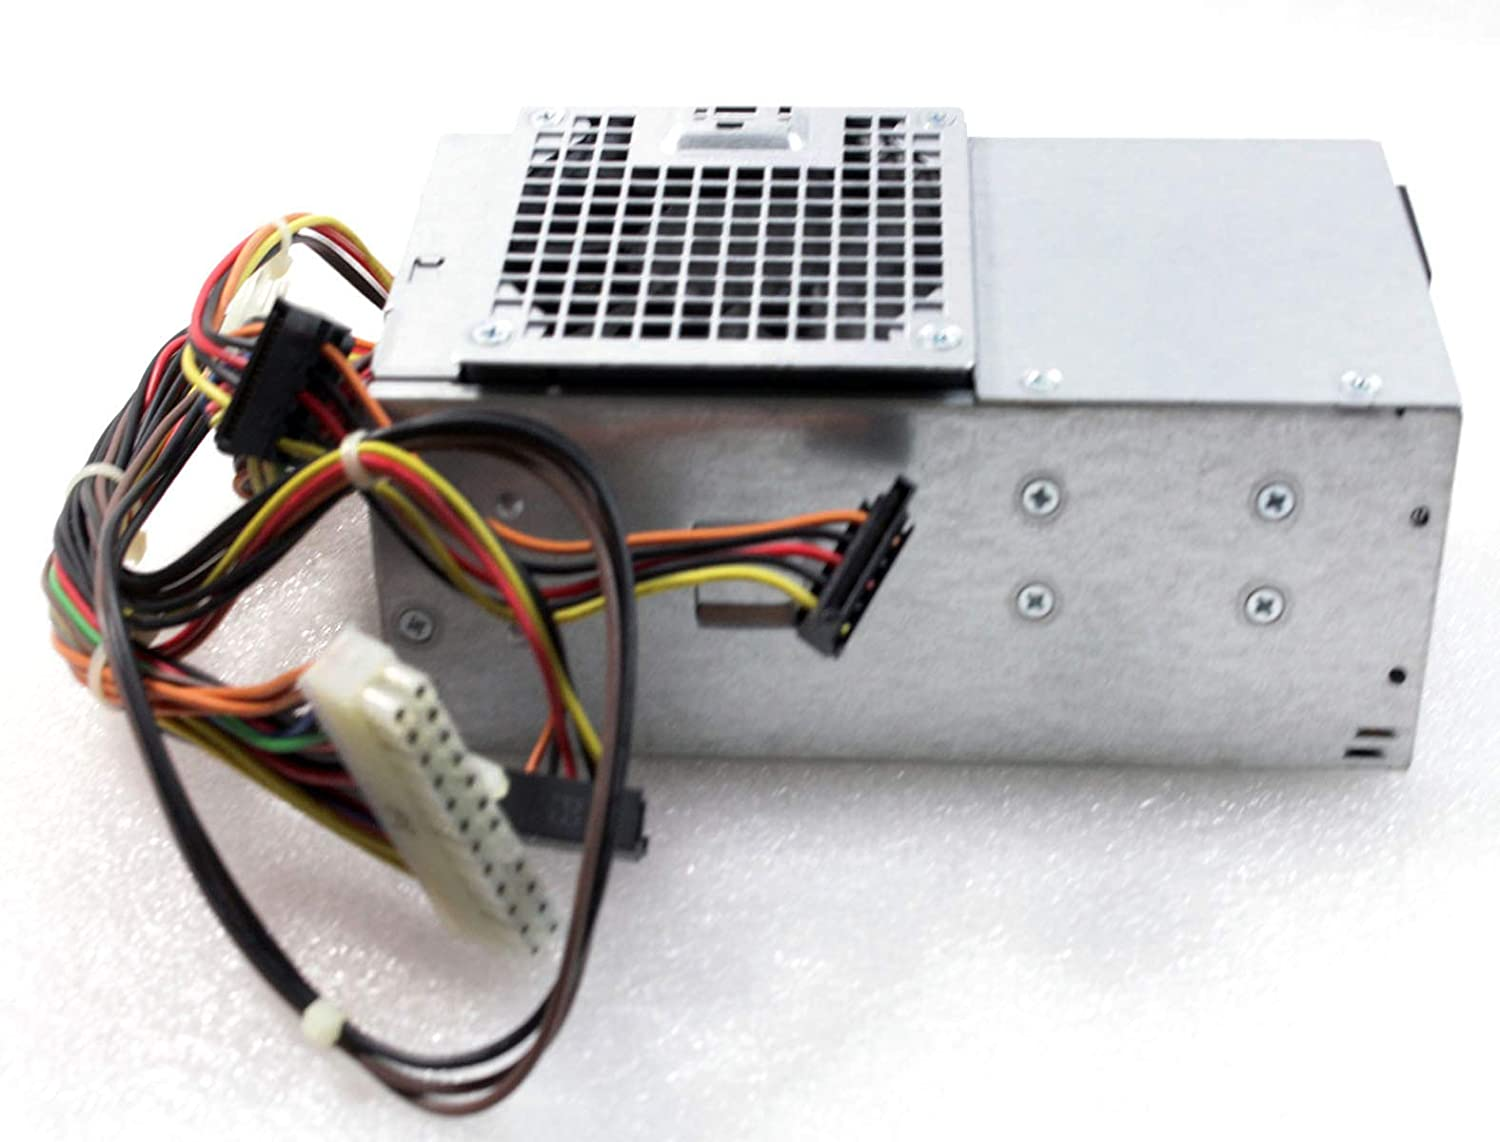 Genuine Power Supply AC250PS-00 250W 100-240V~ for Optiplex 390 790 SFF Vostro 260 and Inspiron 535S 545S M61W4 PCA039 by EbidDealz